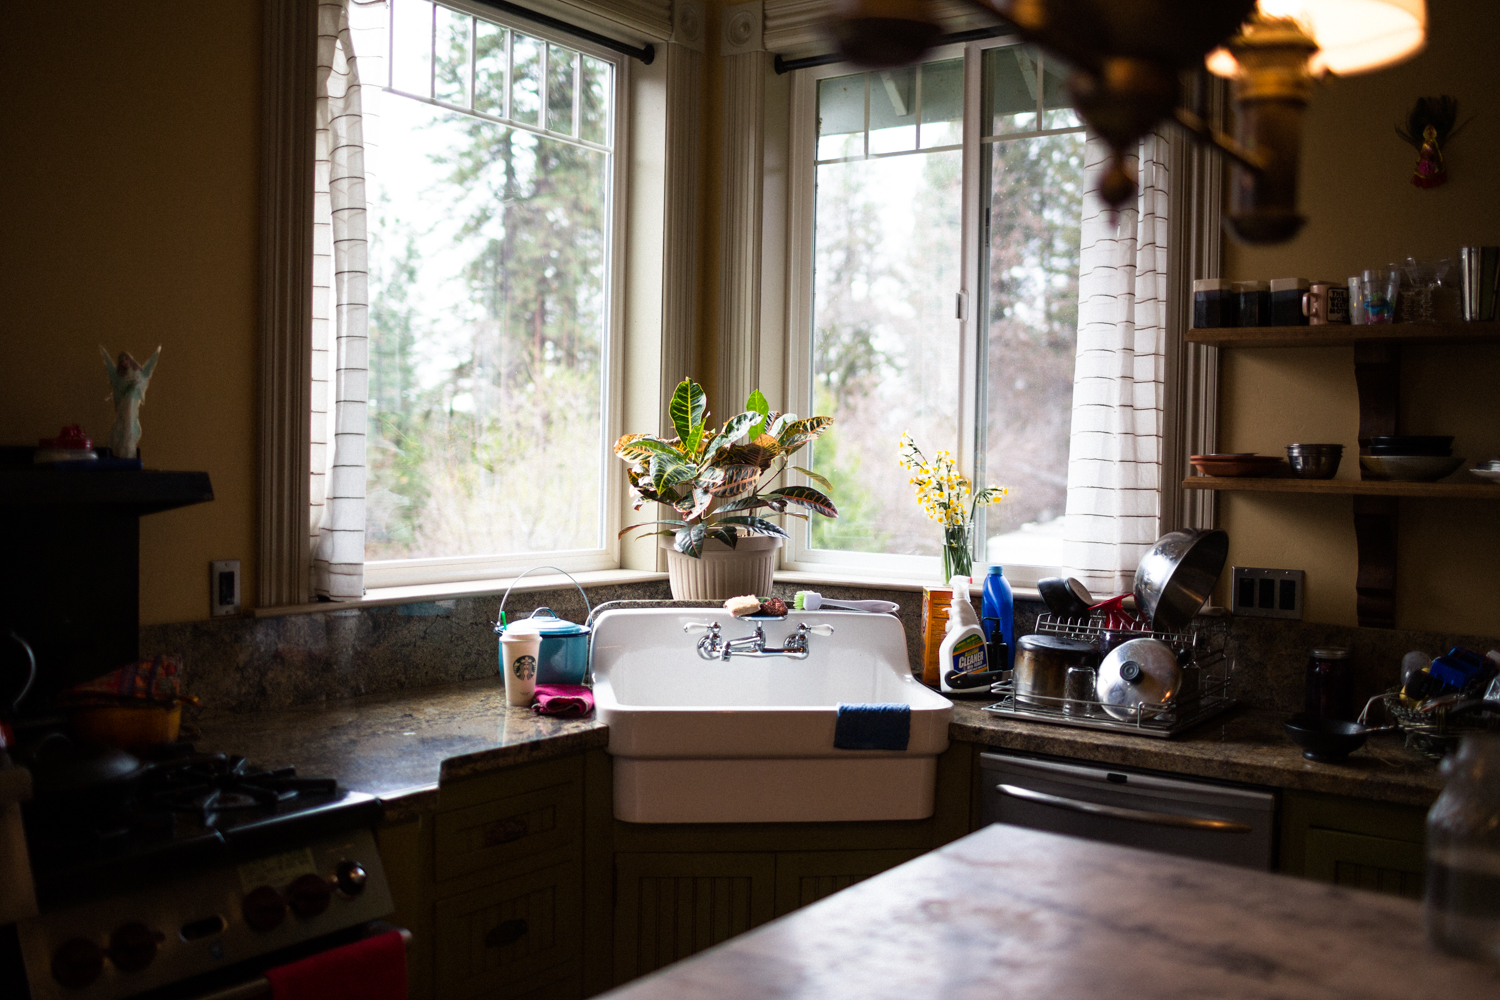 farm kitchen nevada city documentary photographer